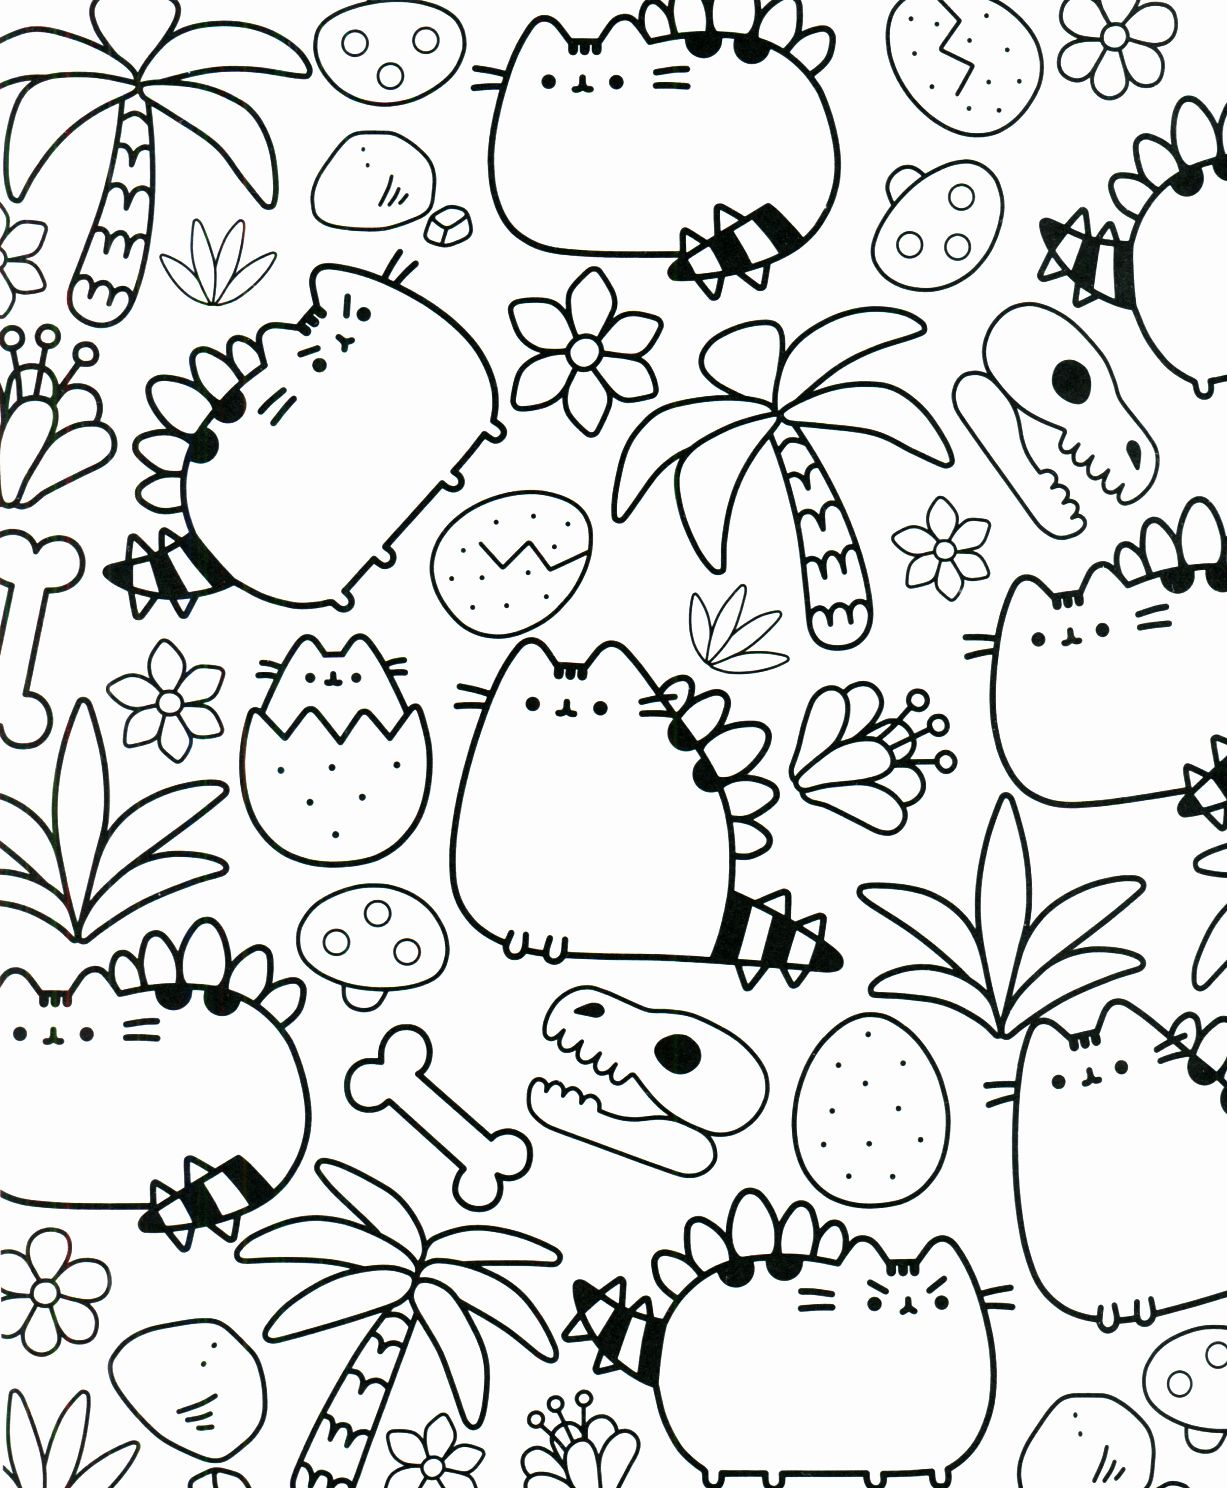 Printable Pusheen Coloring Pages Luxury Pusheen Coloring Book Pusheen Pusheen The Cat Pusheen Coloring Pages Unicorn Coloring Pages Coloring Pages